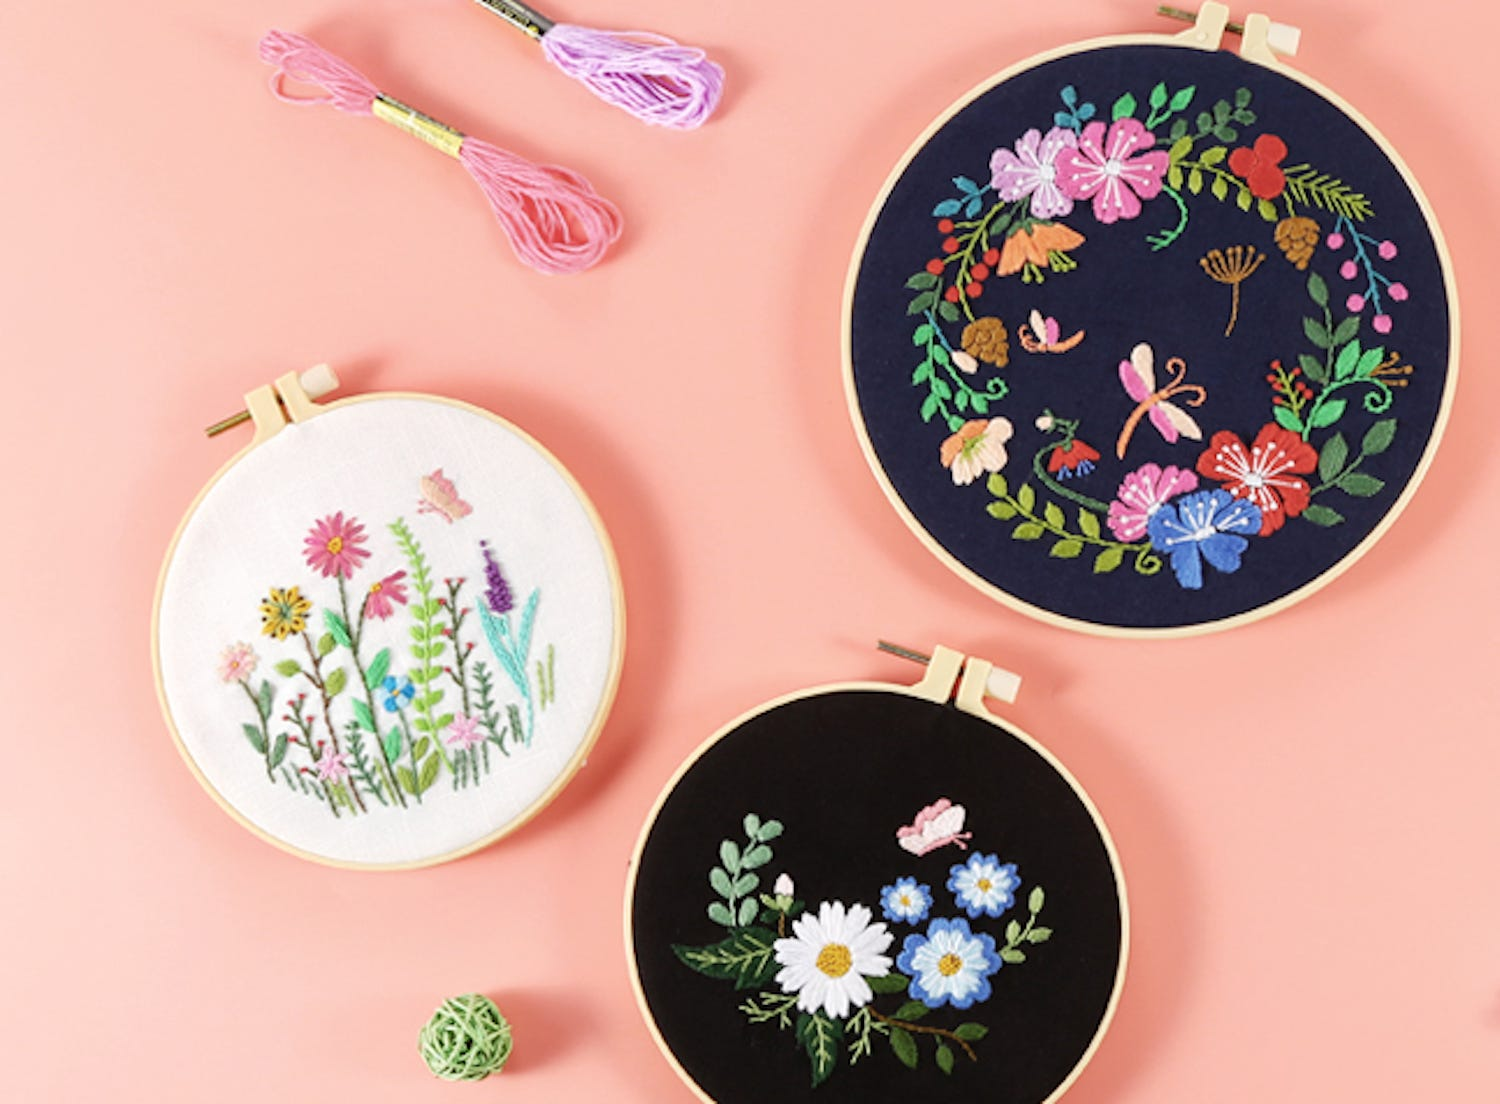 Three embroidery hoops holding fabric embroidered with floral designs